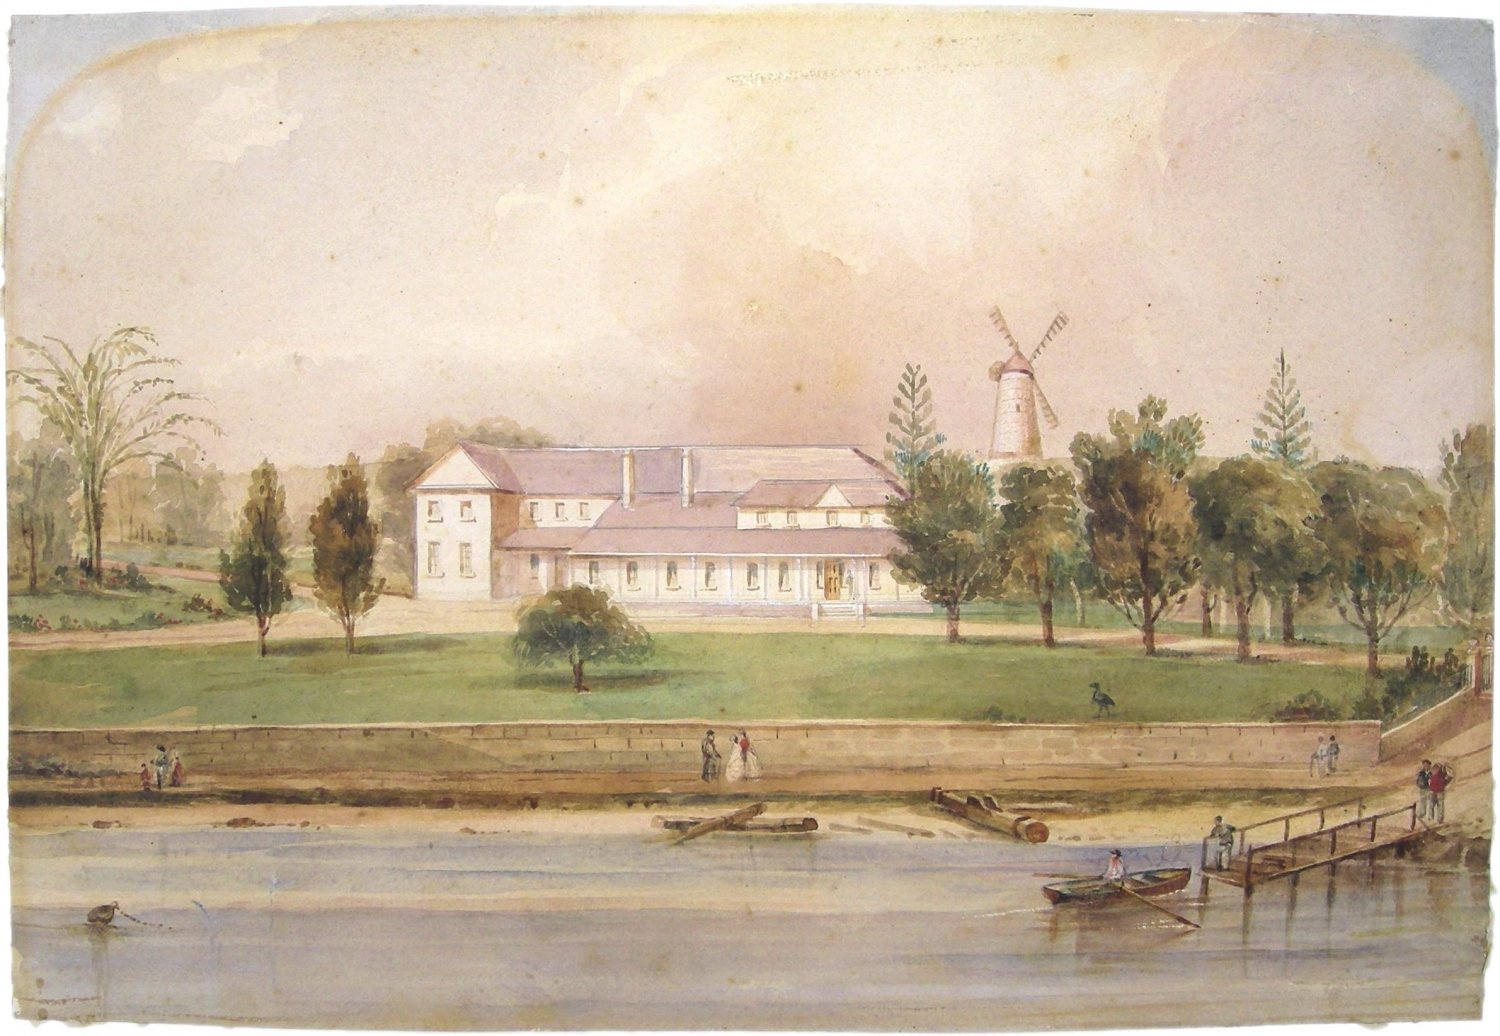 Painting of old Government House, c1840.